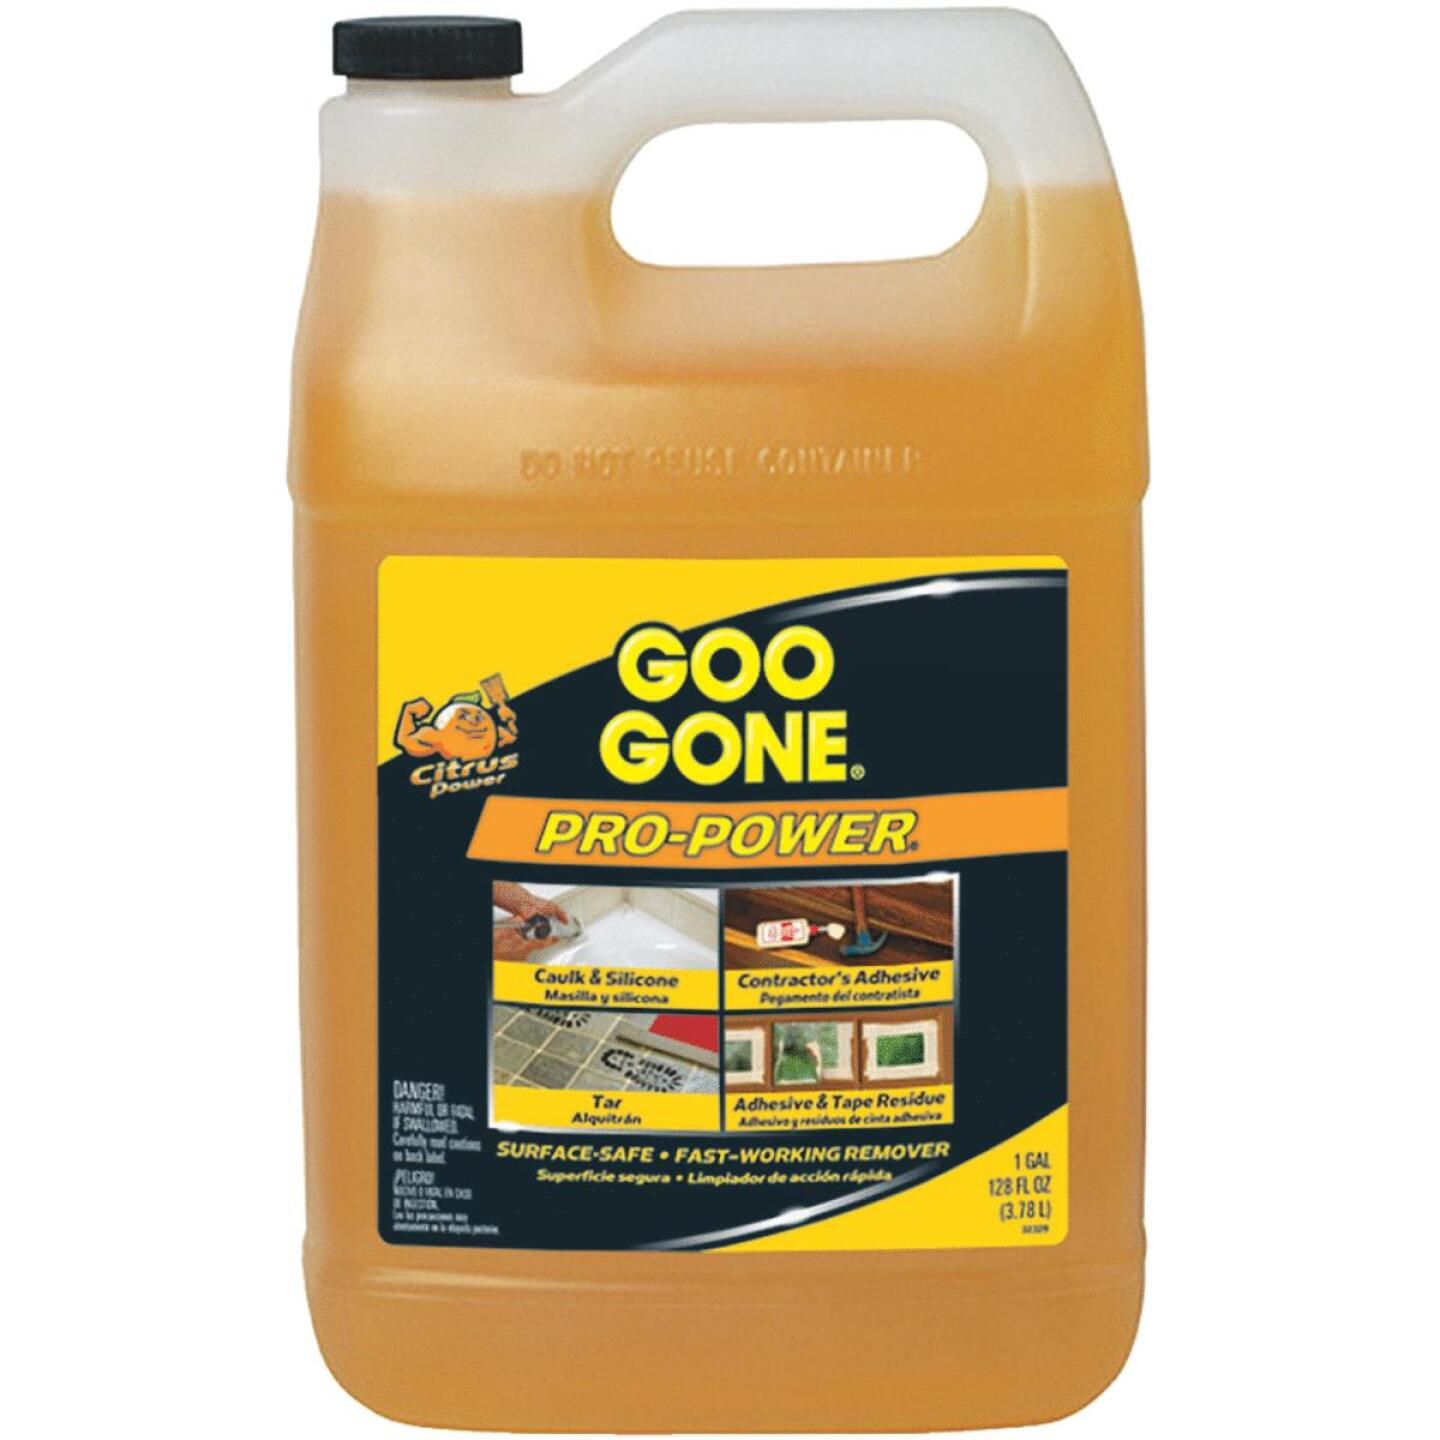 Goo Gone 1 Gal. Pro-Power Adhesive Remover Image 313